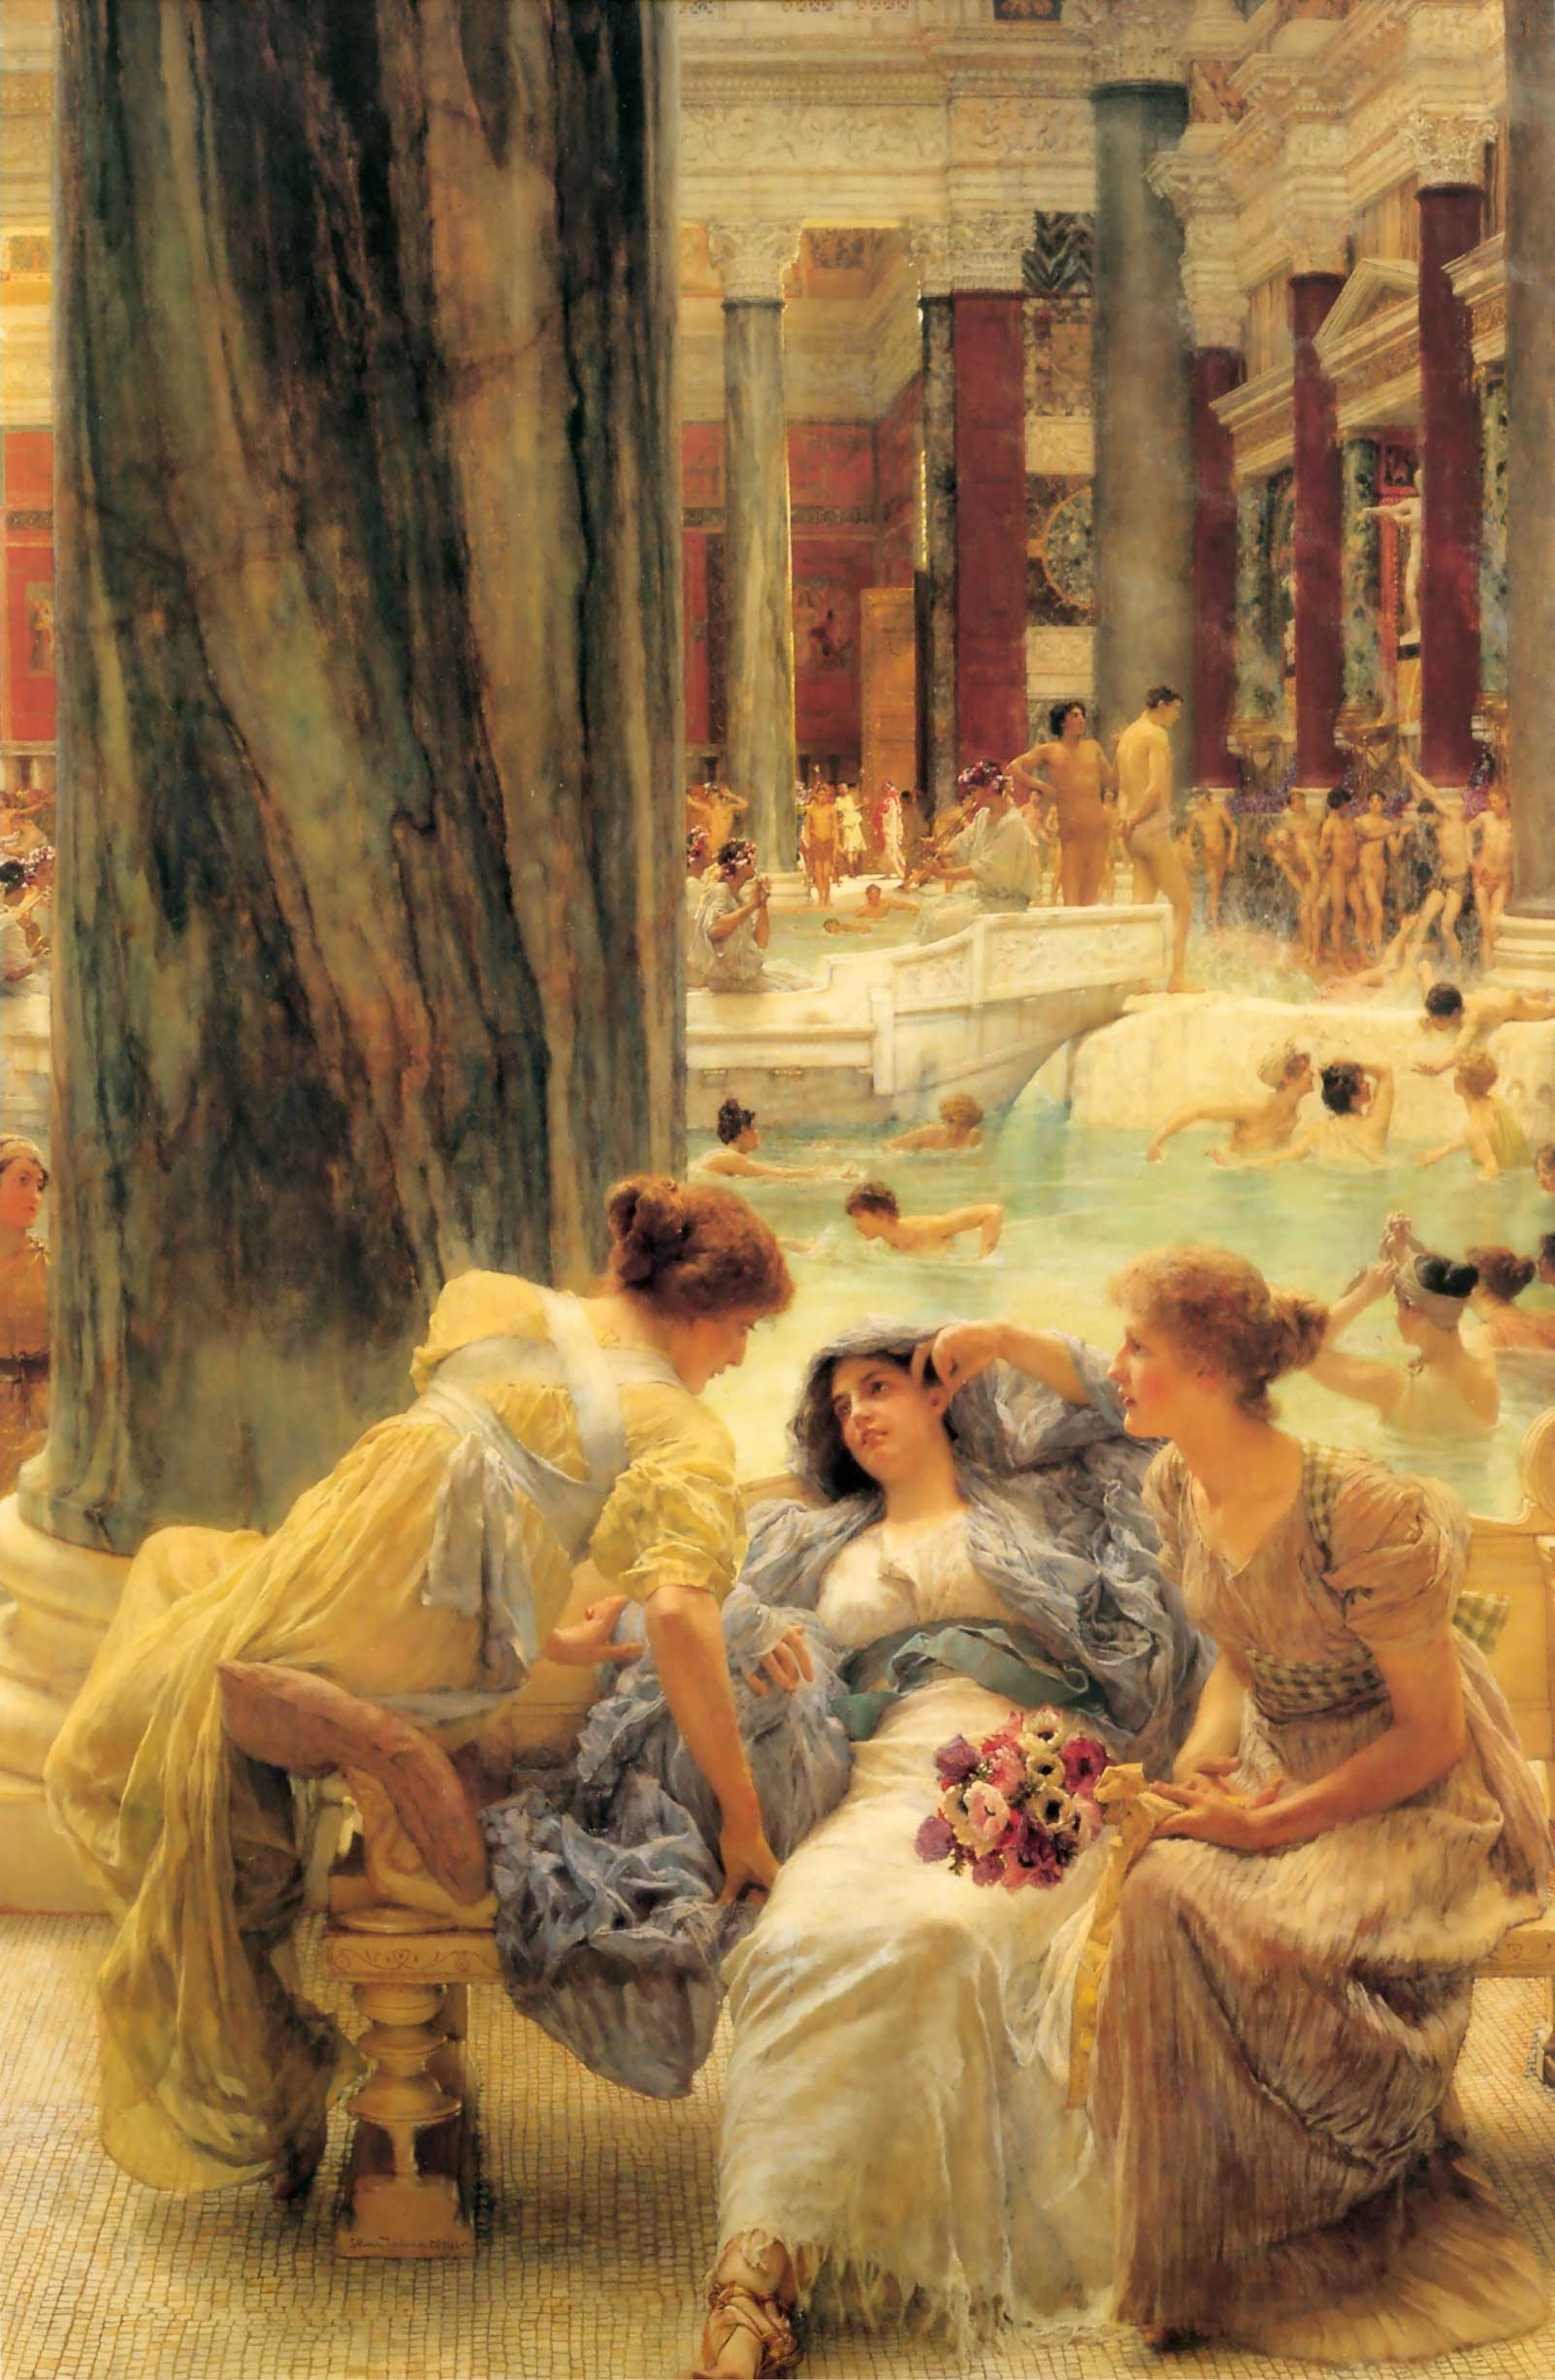 http://uploads0.wikipaintings.org/images/alma-tadema-lawrence/the-baths-of-caracalla-1899.jpg